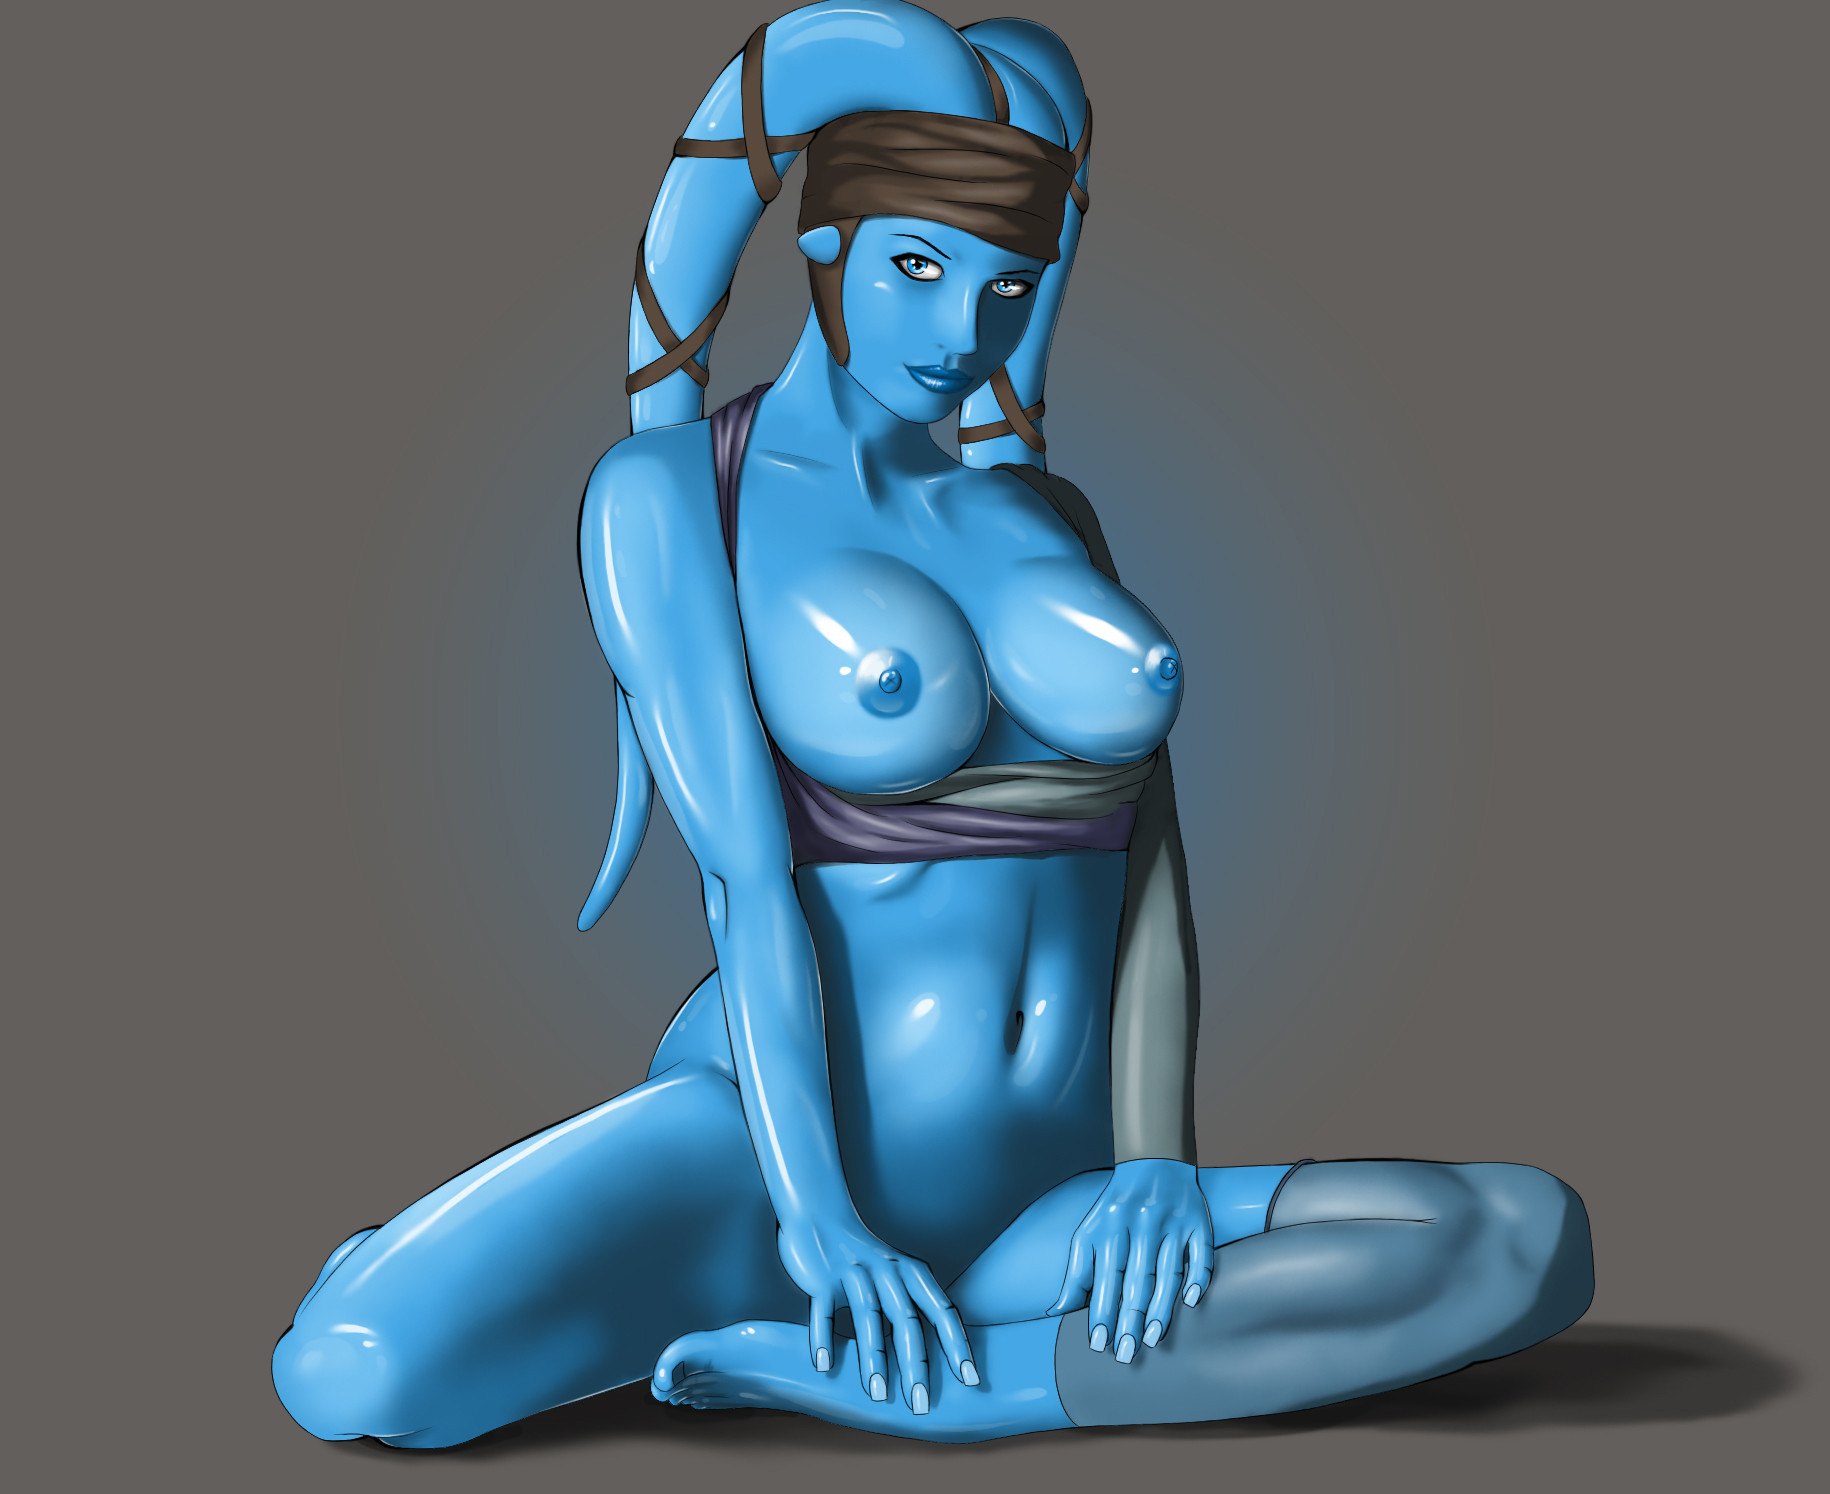 Star wars aayla secura nude sheer vitality